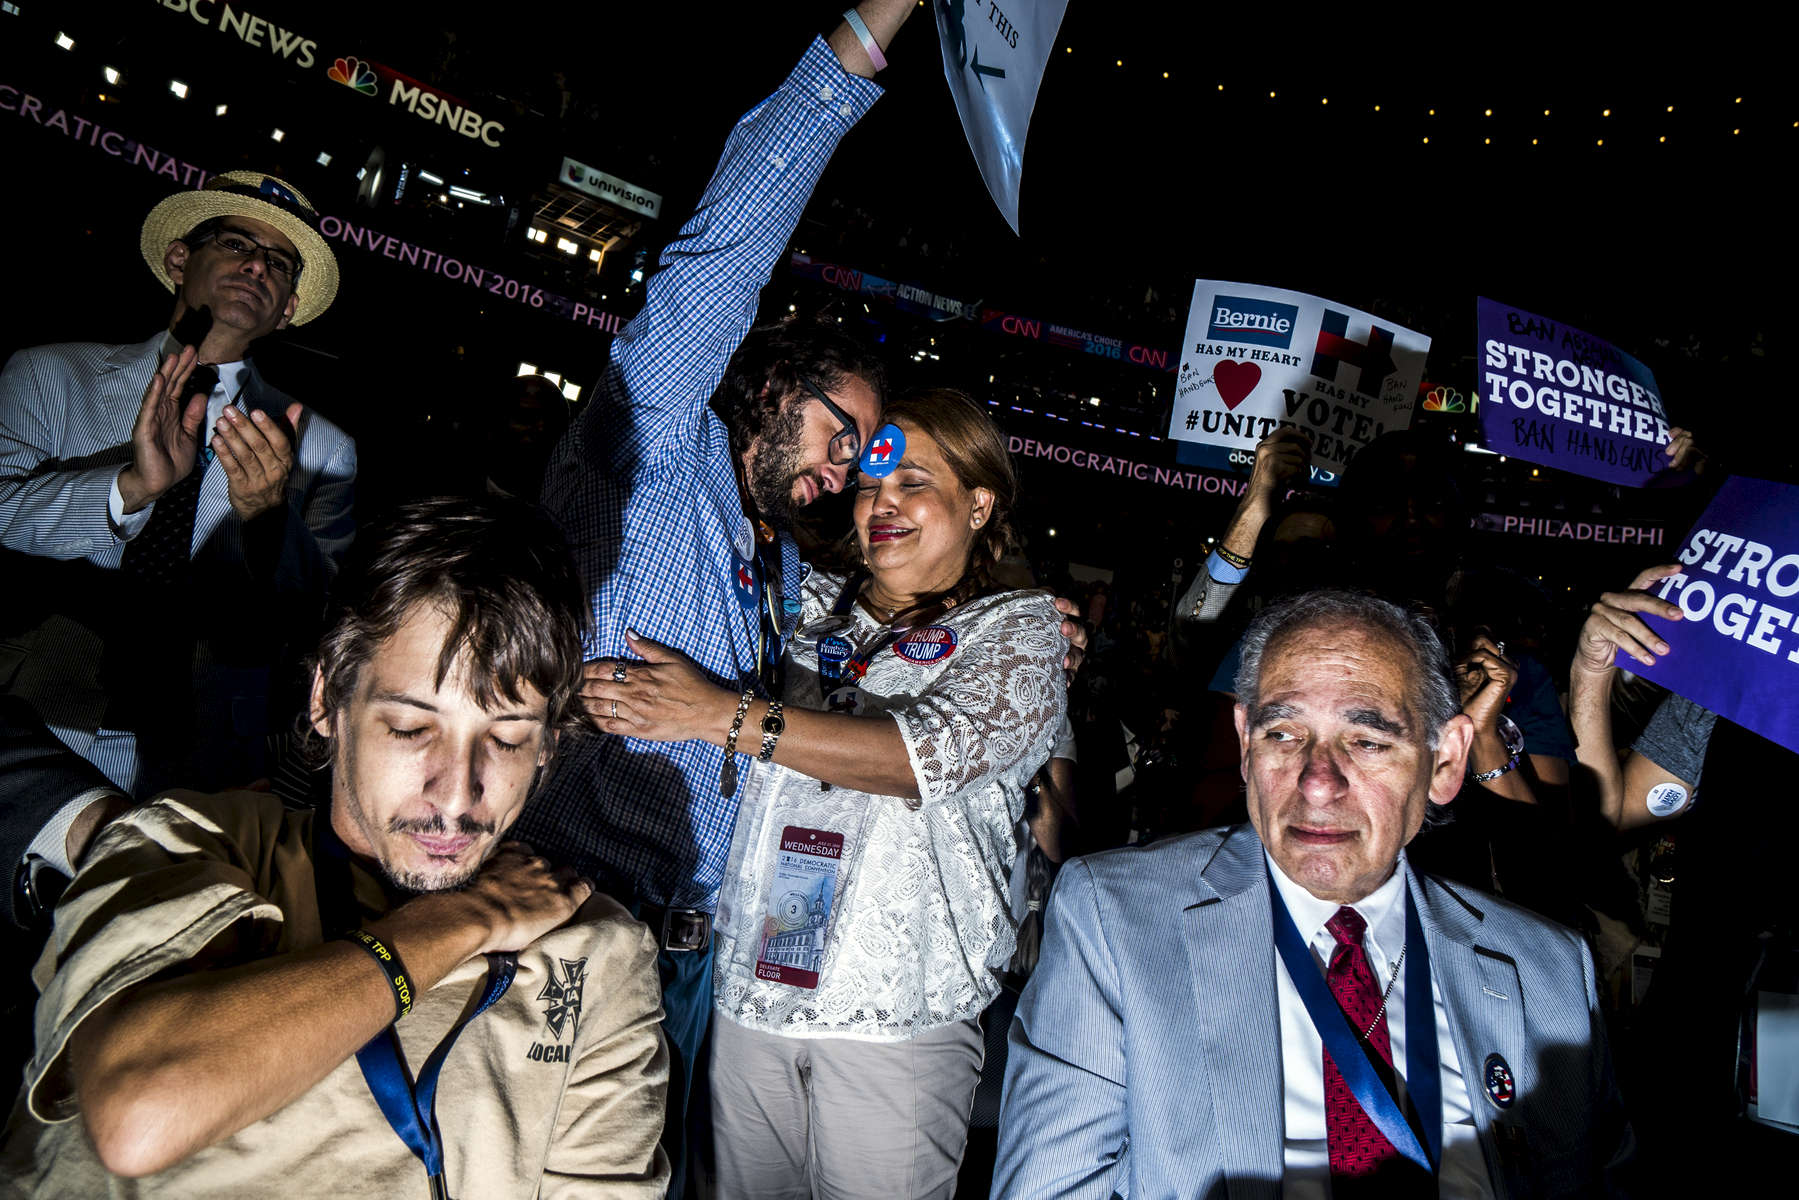 Philadelphia, PA - July 27, 2016: Relatives and friends of the victims of the Pulse Nightclub shooting react during a speech against gun violence at the Democratic National Convention in Philadelphia, PA.